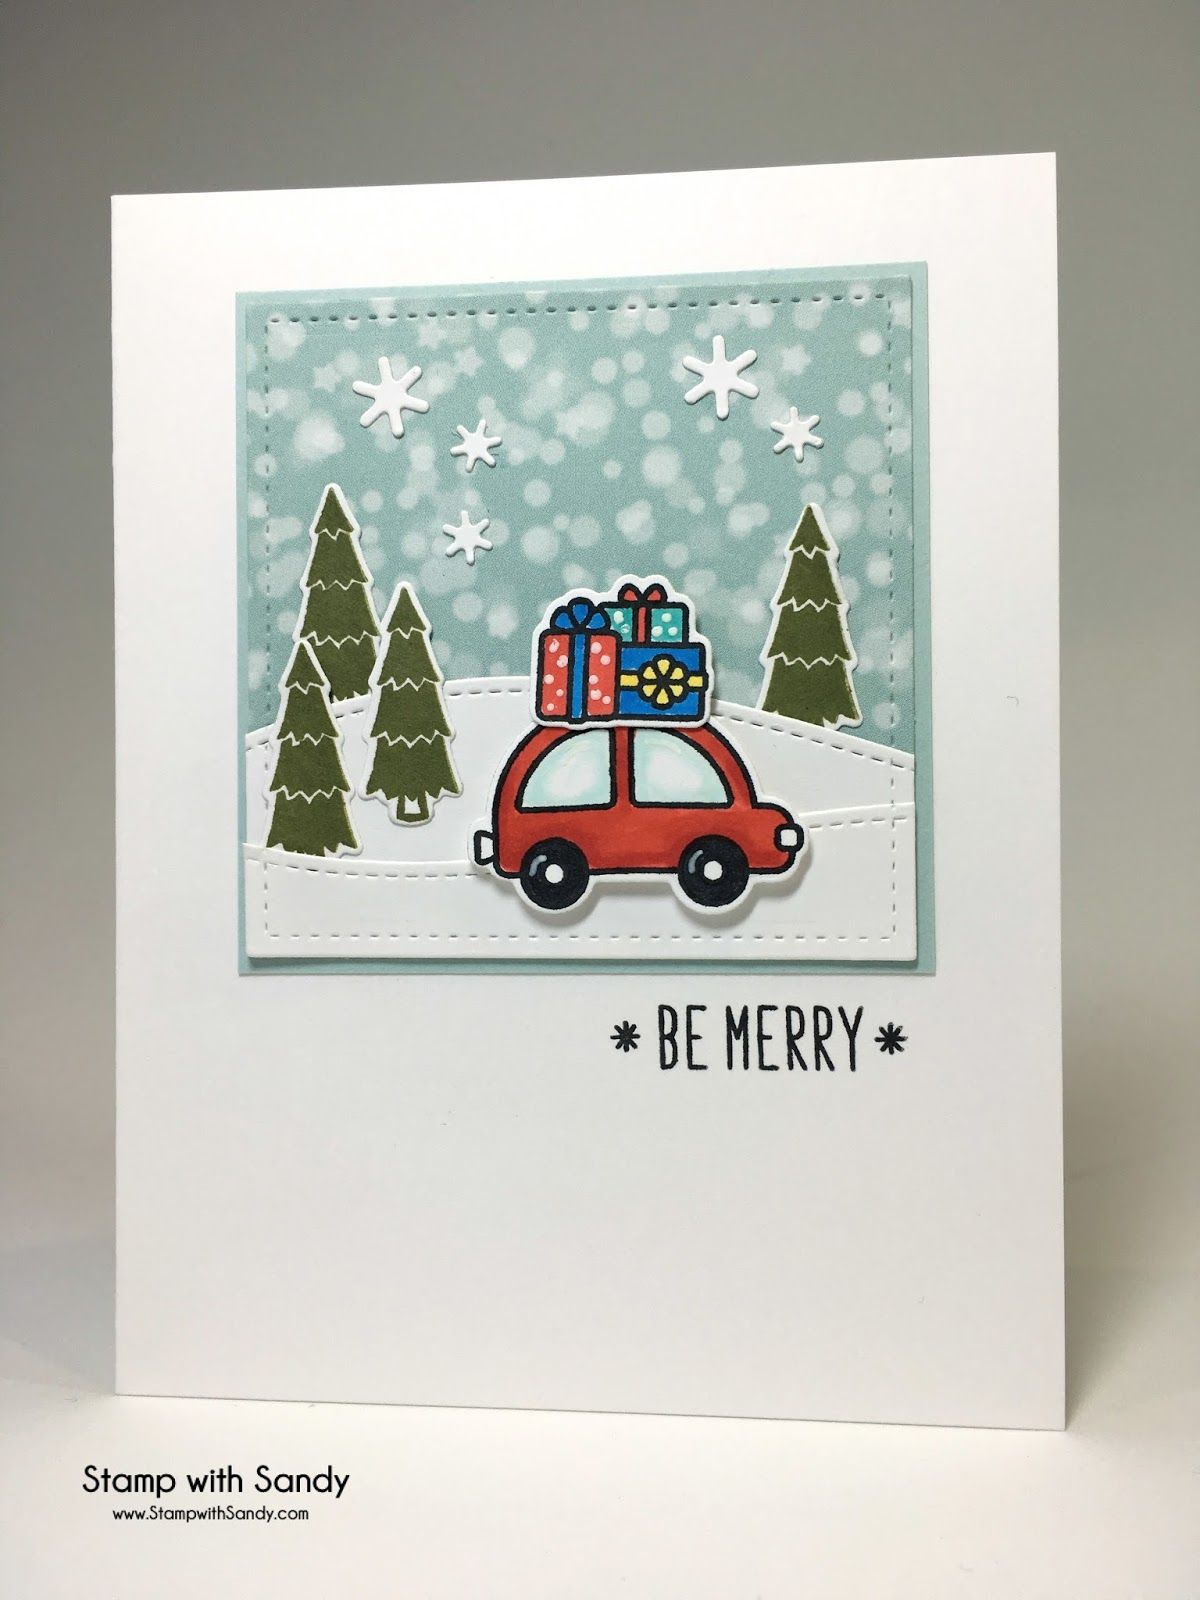 Home for the Holidays PP322 A Cards2017 Pinterest